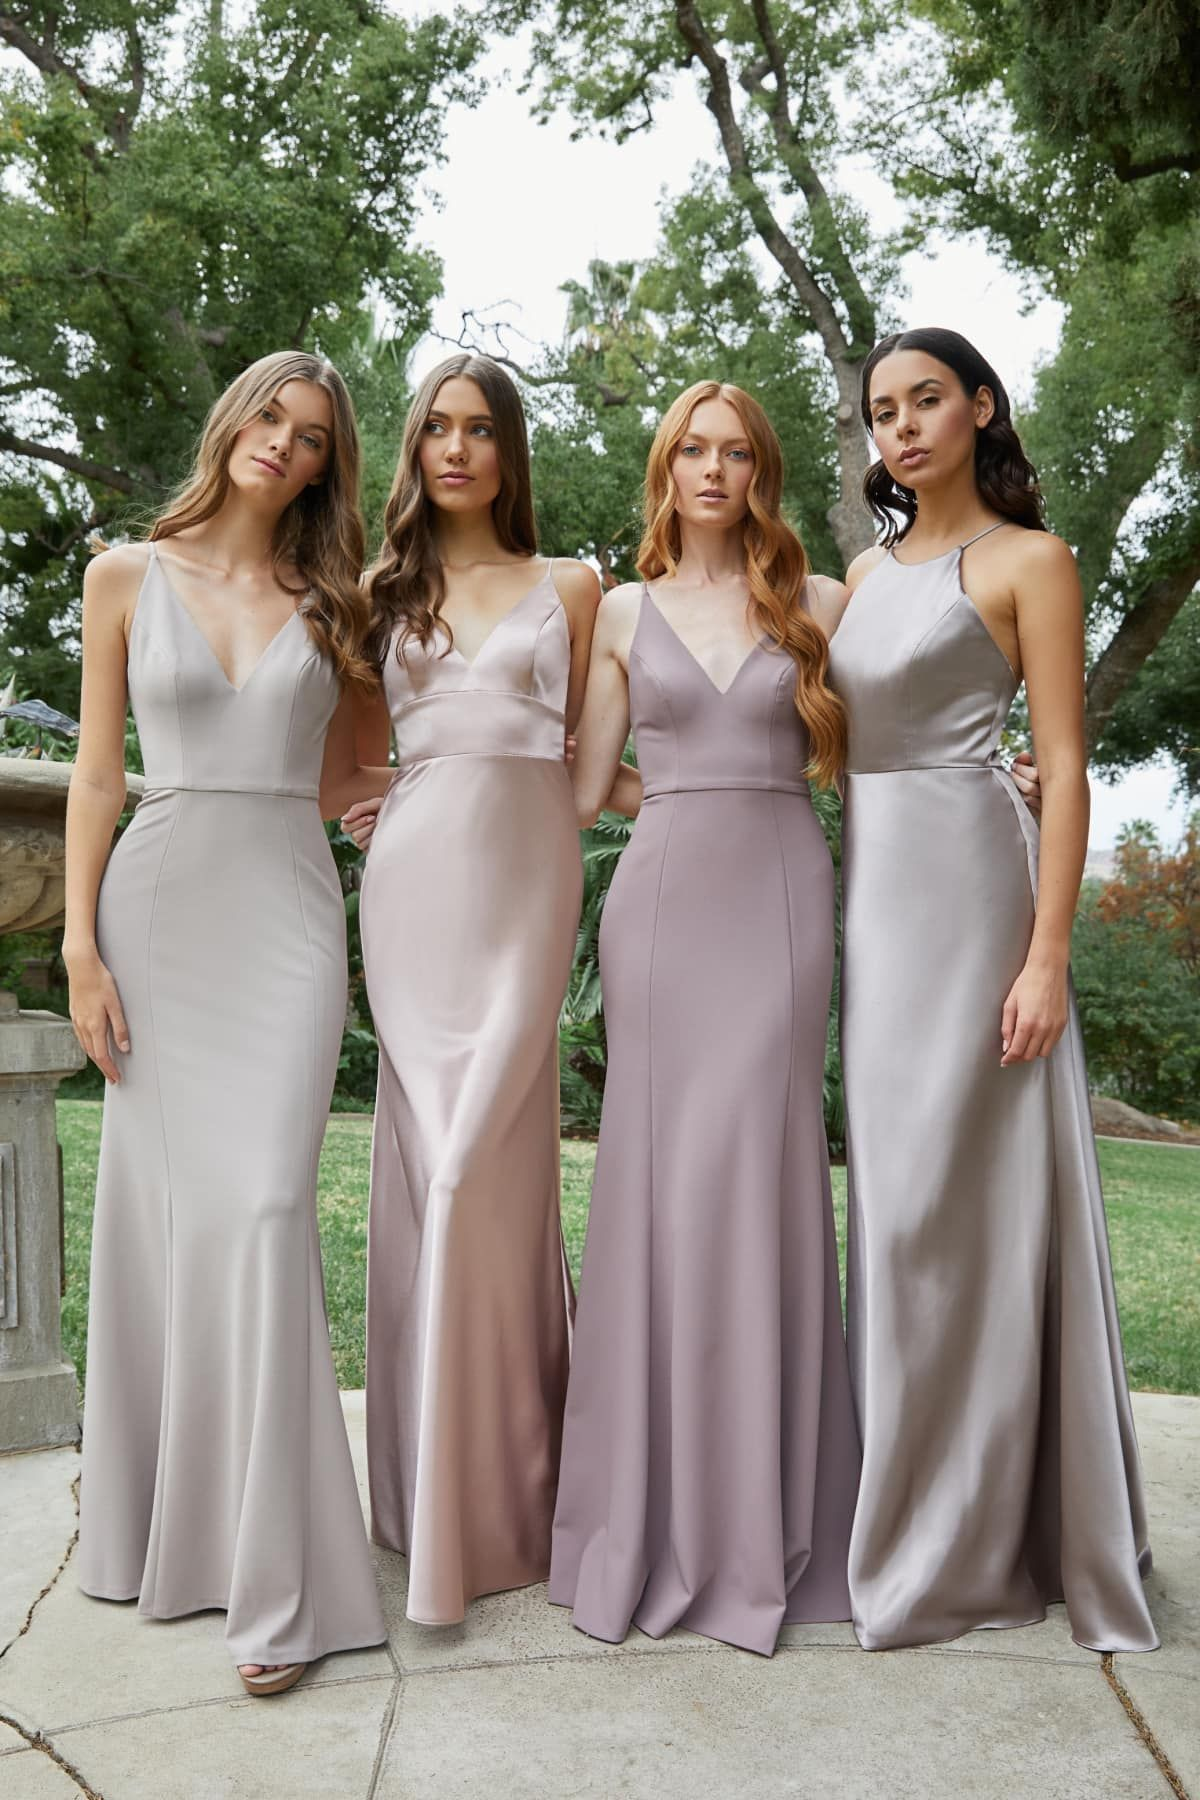 Malibu Wedding By Amber Events Purple Bridesmaid Dresses Bridesmaid Grey Bridesmaid Dresses